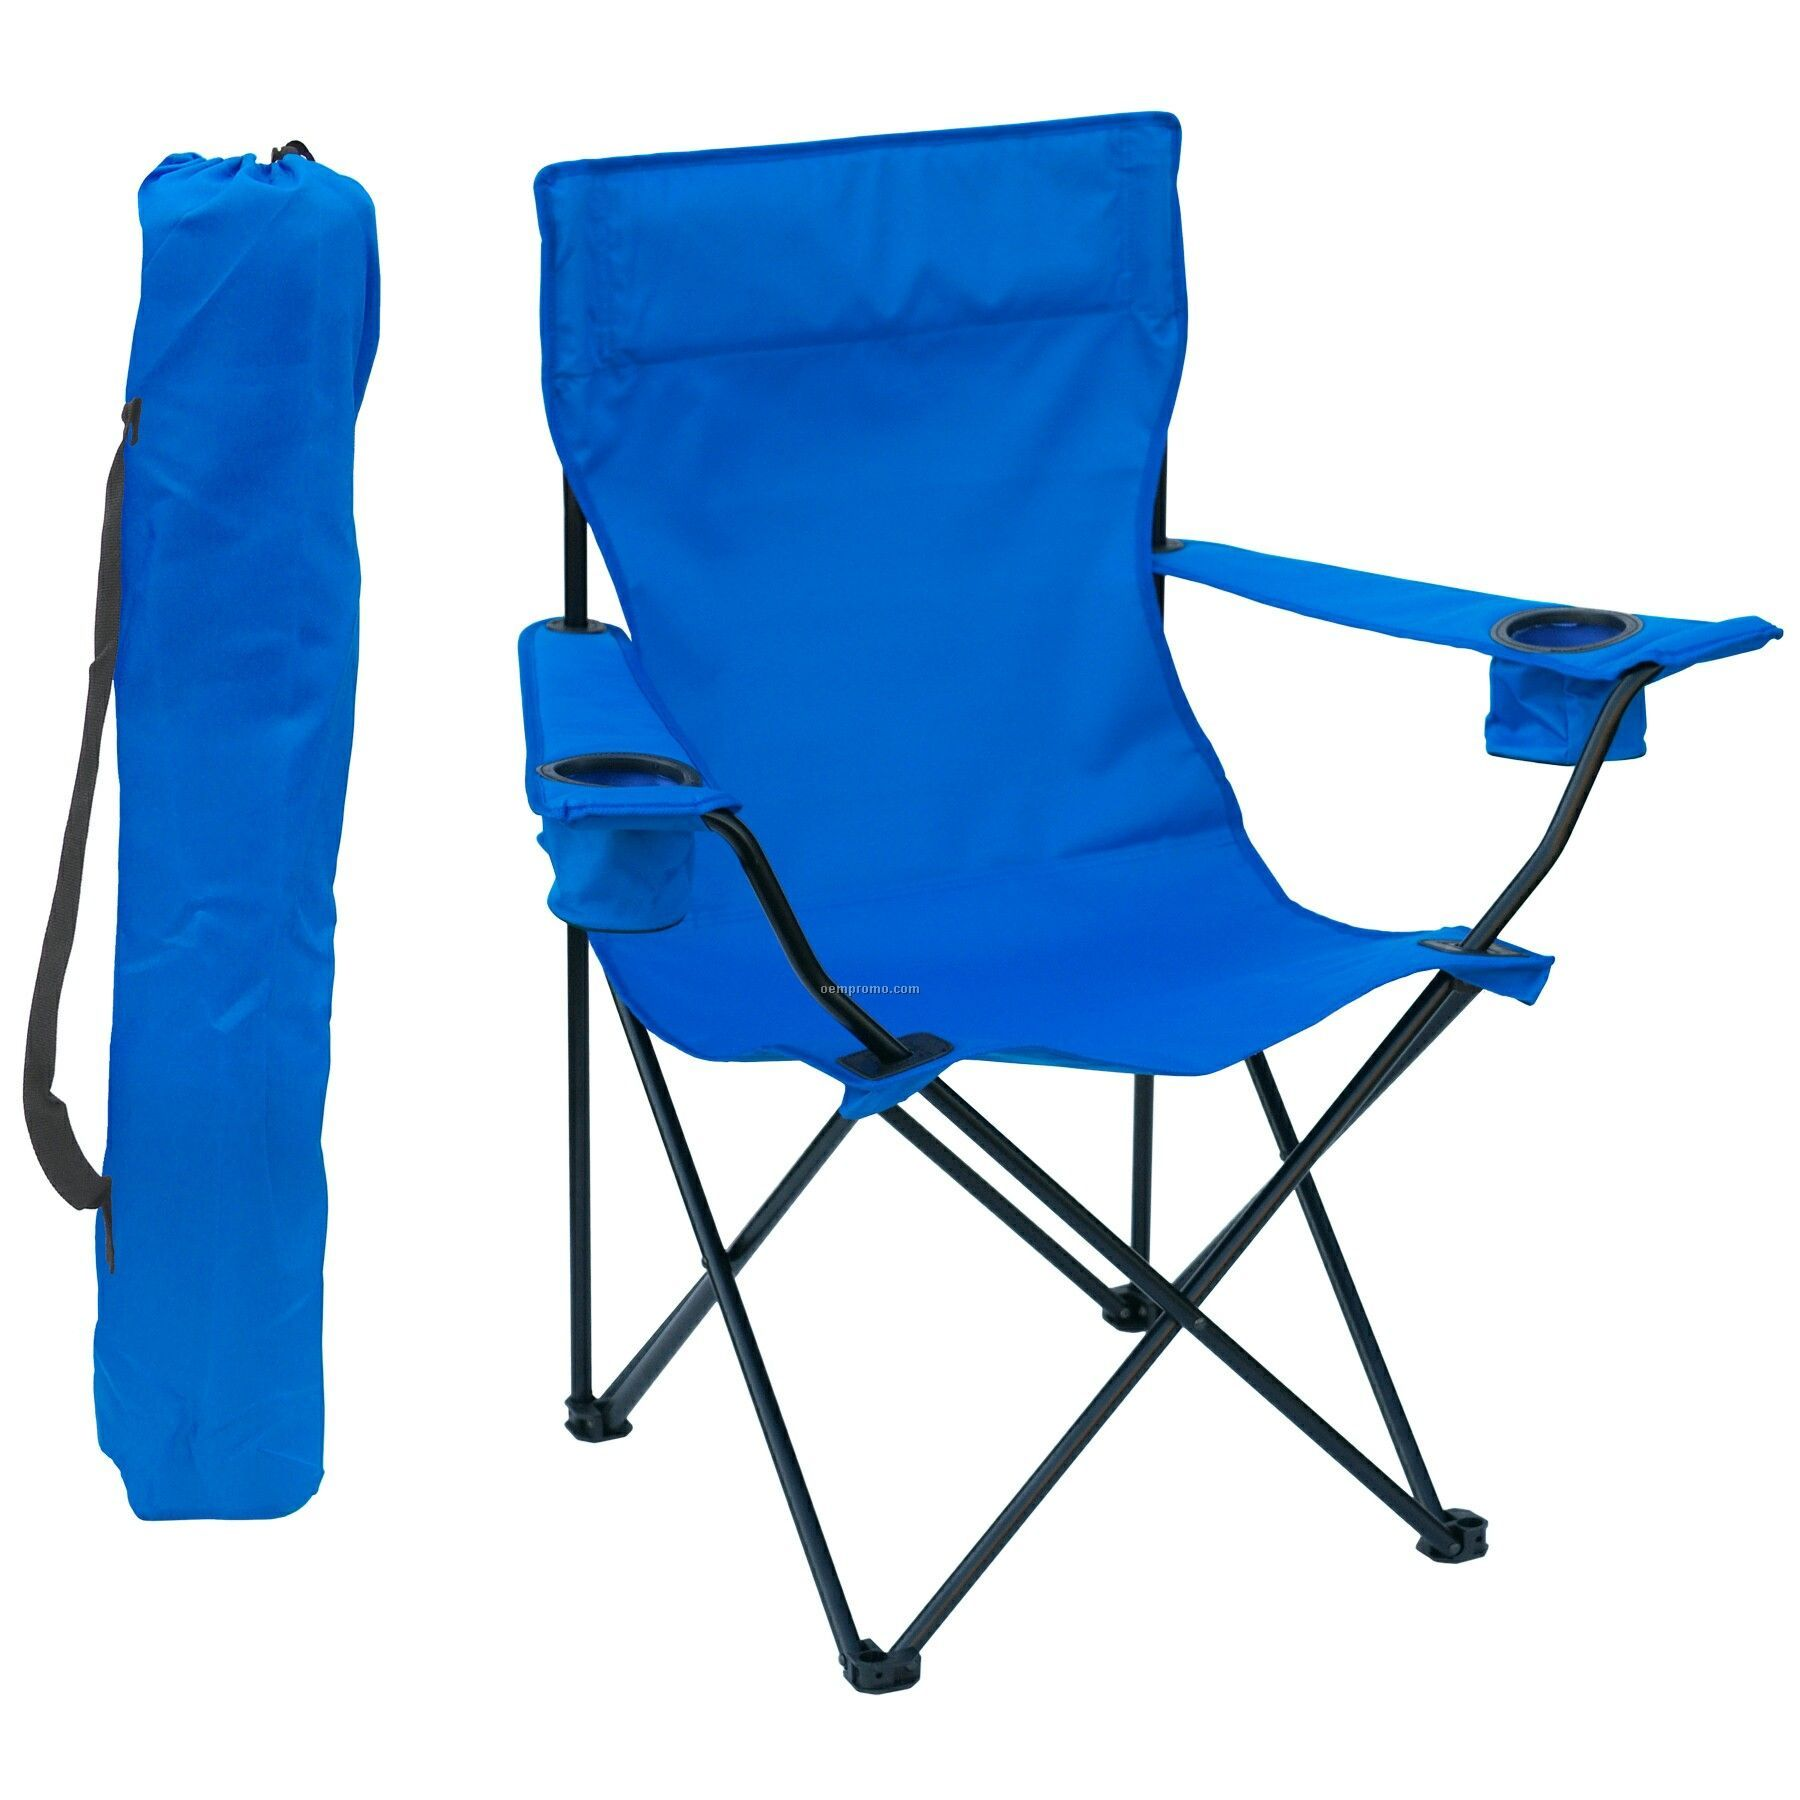 Folding Beach Chair Buy Camping And Beach Folding Chair In Pakistan Buyoye Pk